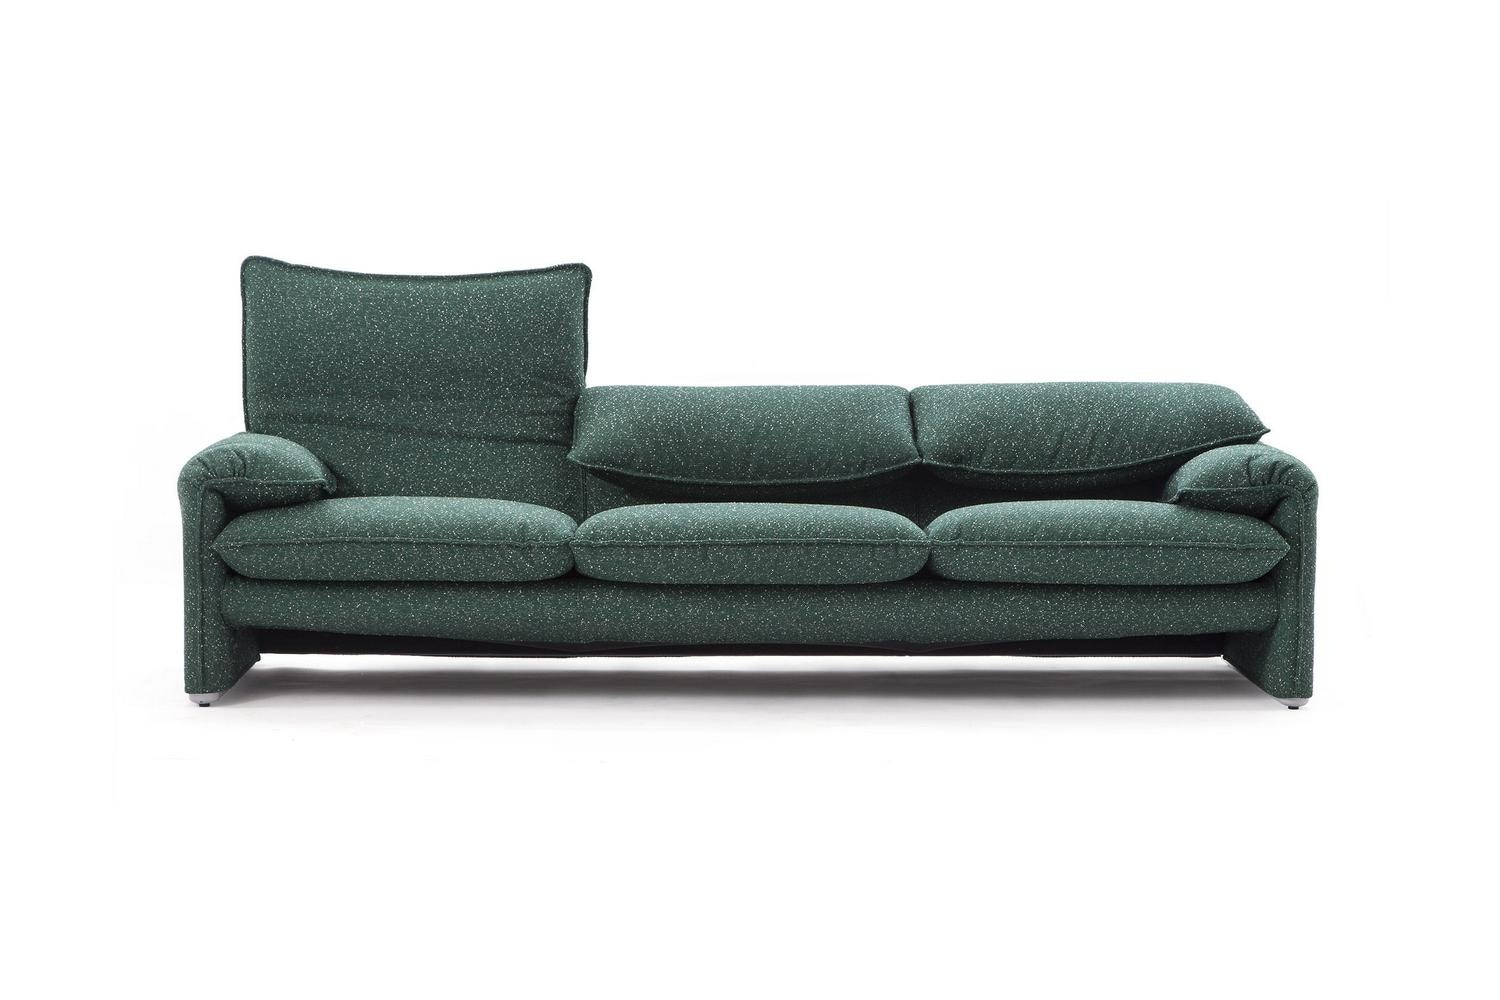 675 Maralunga 40S Sofa by Vico Magistretti for Cassina